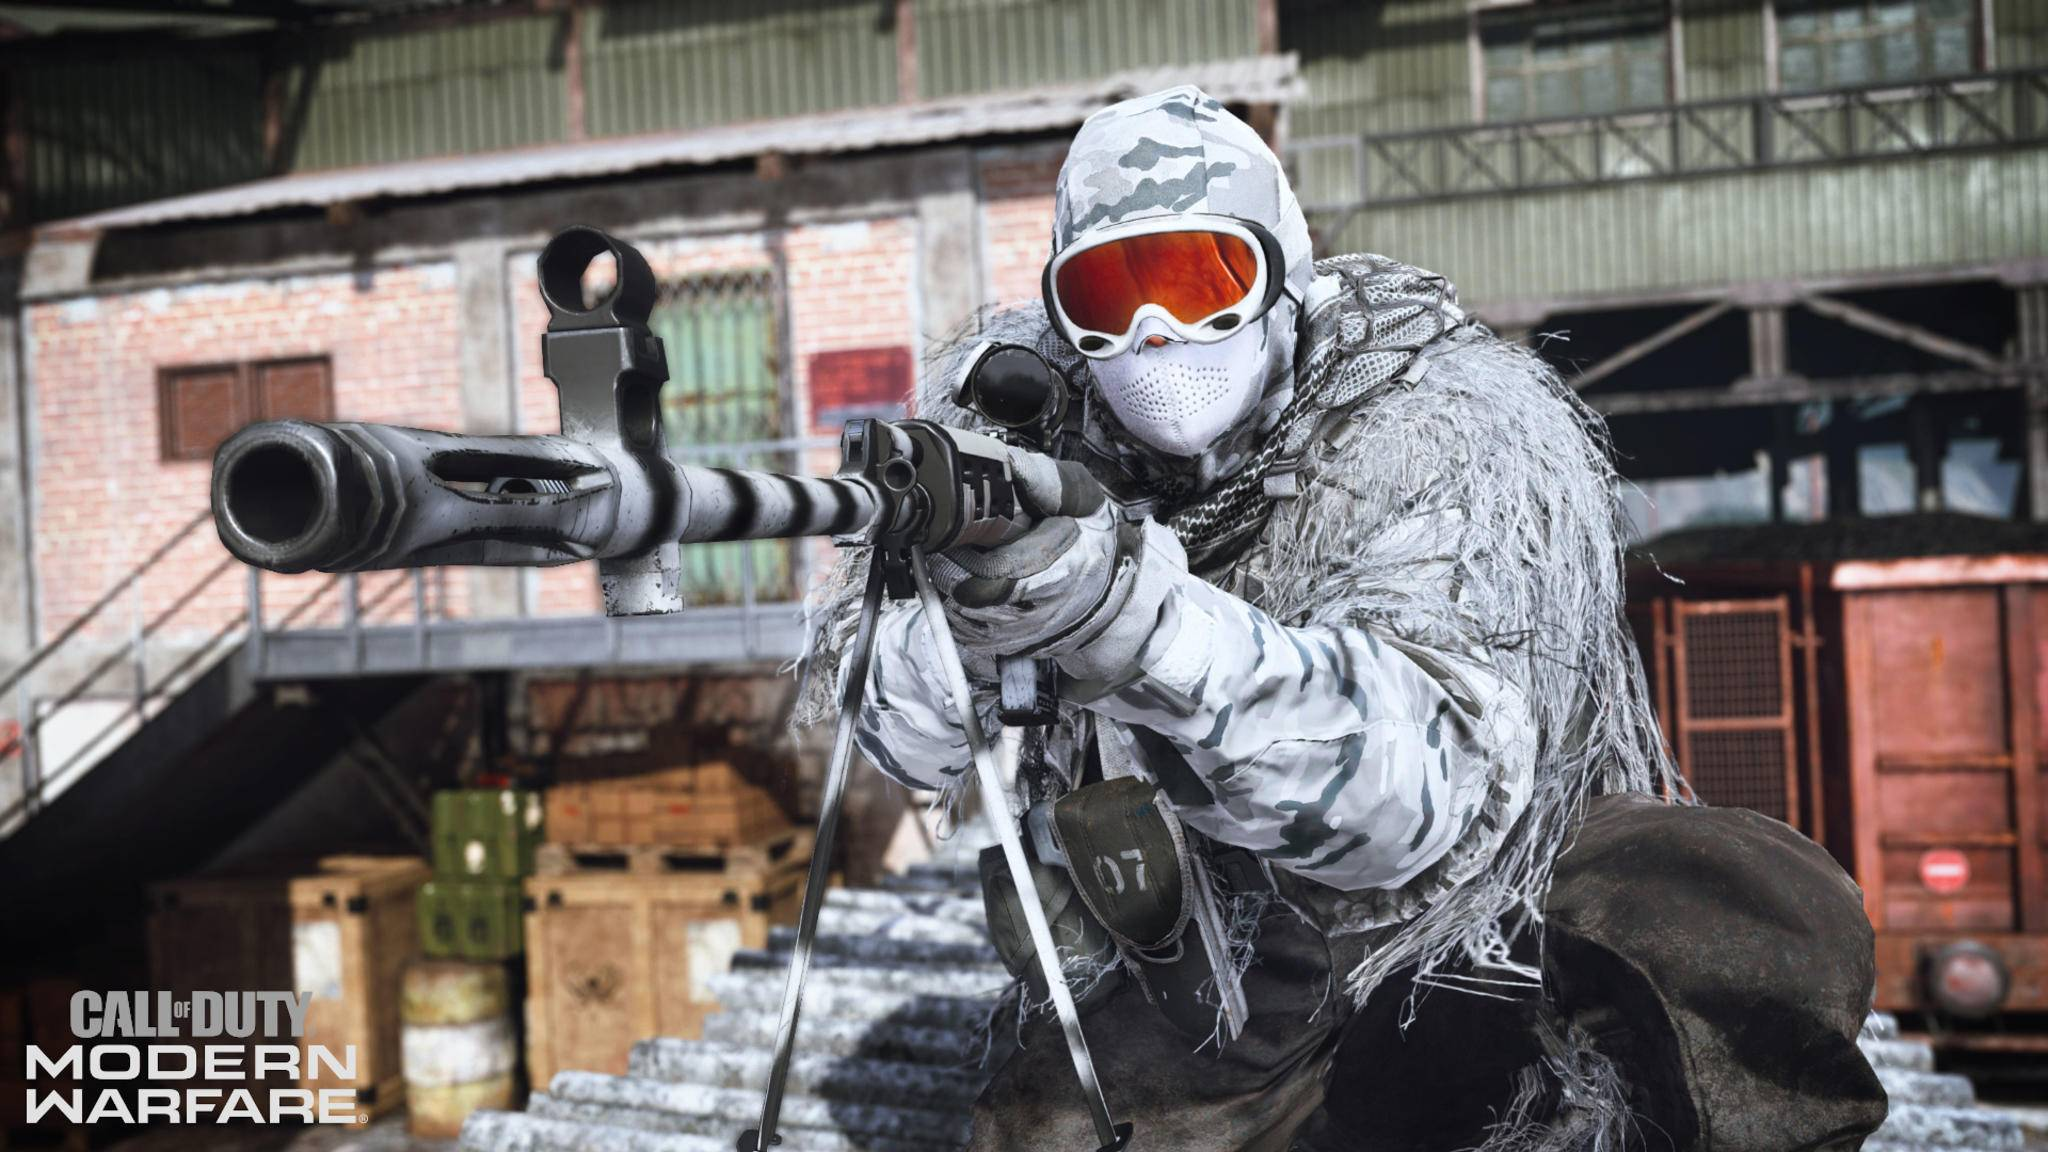 call-of-duty-modern-warfare-sniper-schnee